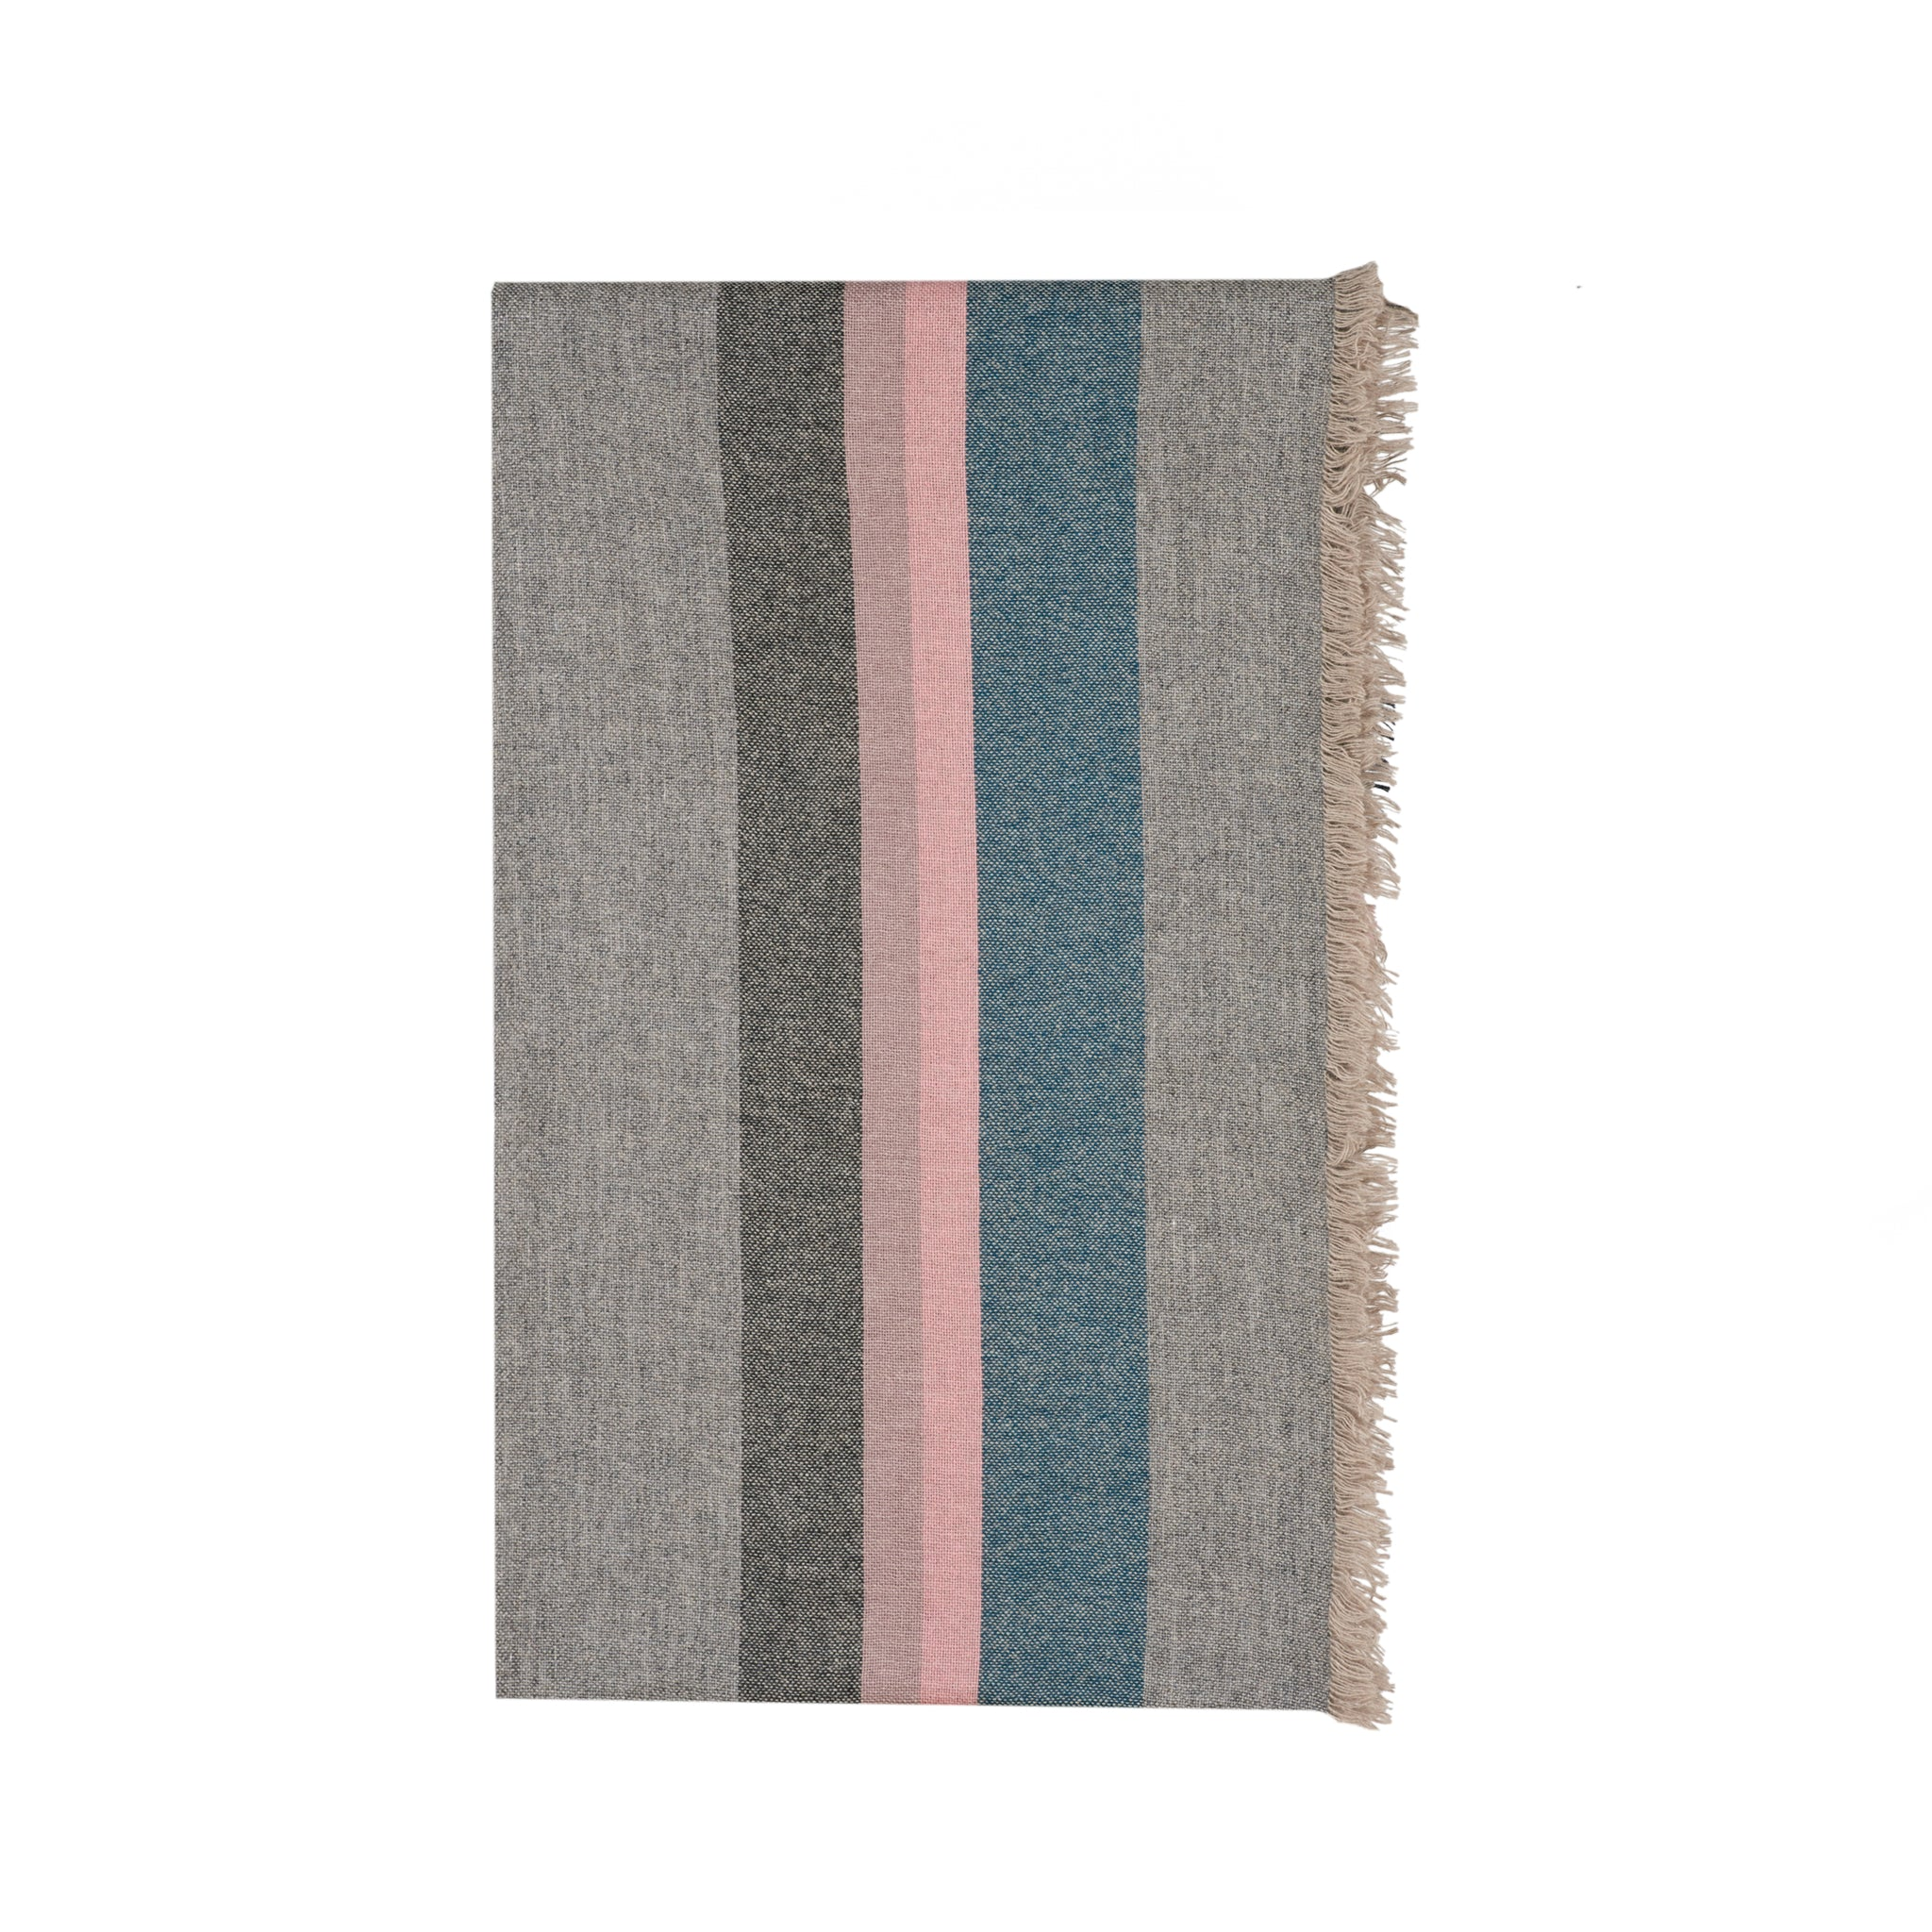 NUEVO! Bufanda larga Begg & Co Aalto Grey Blush